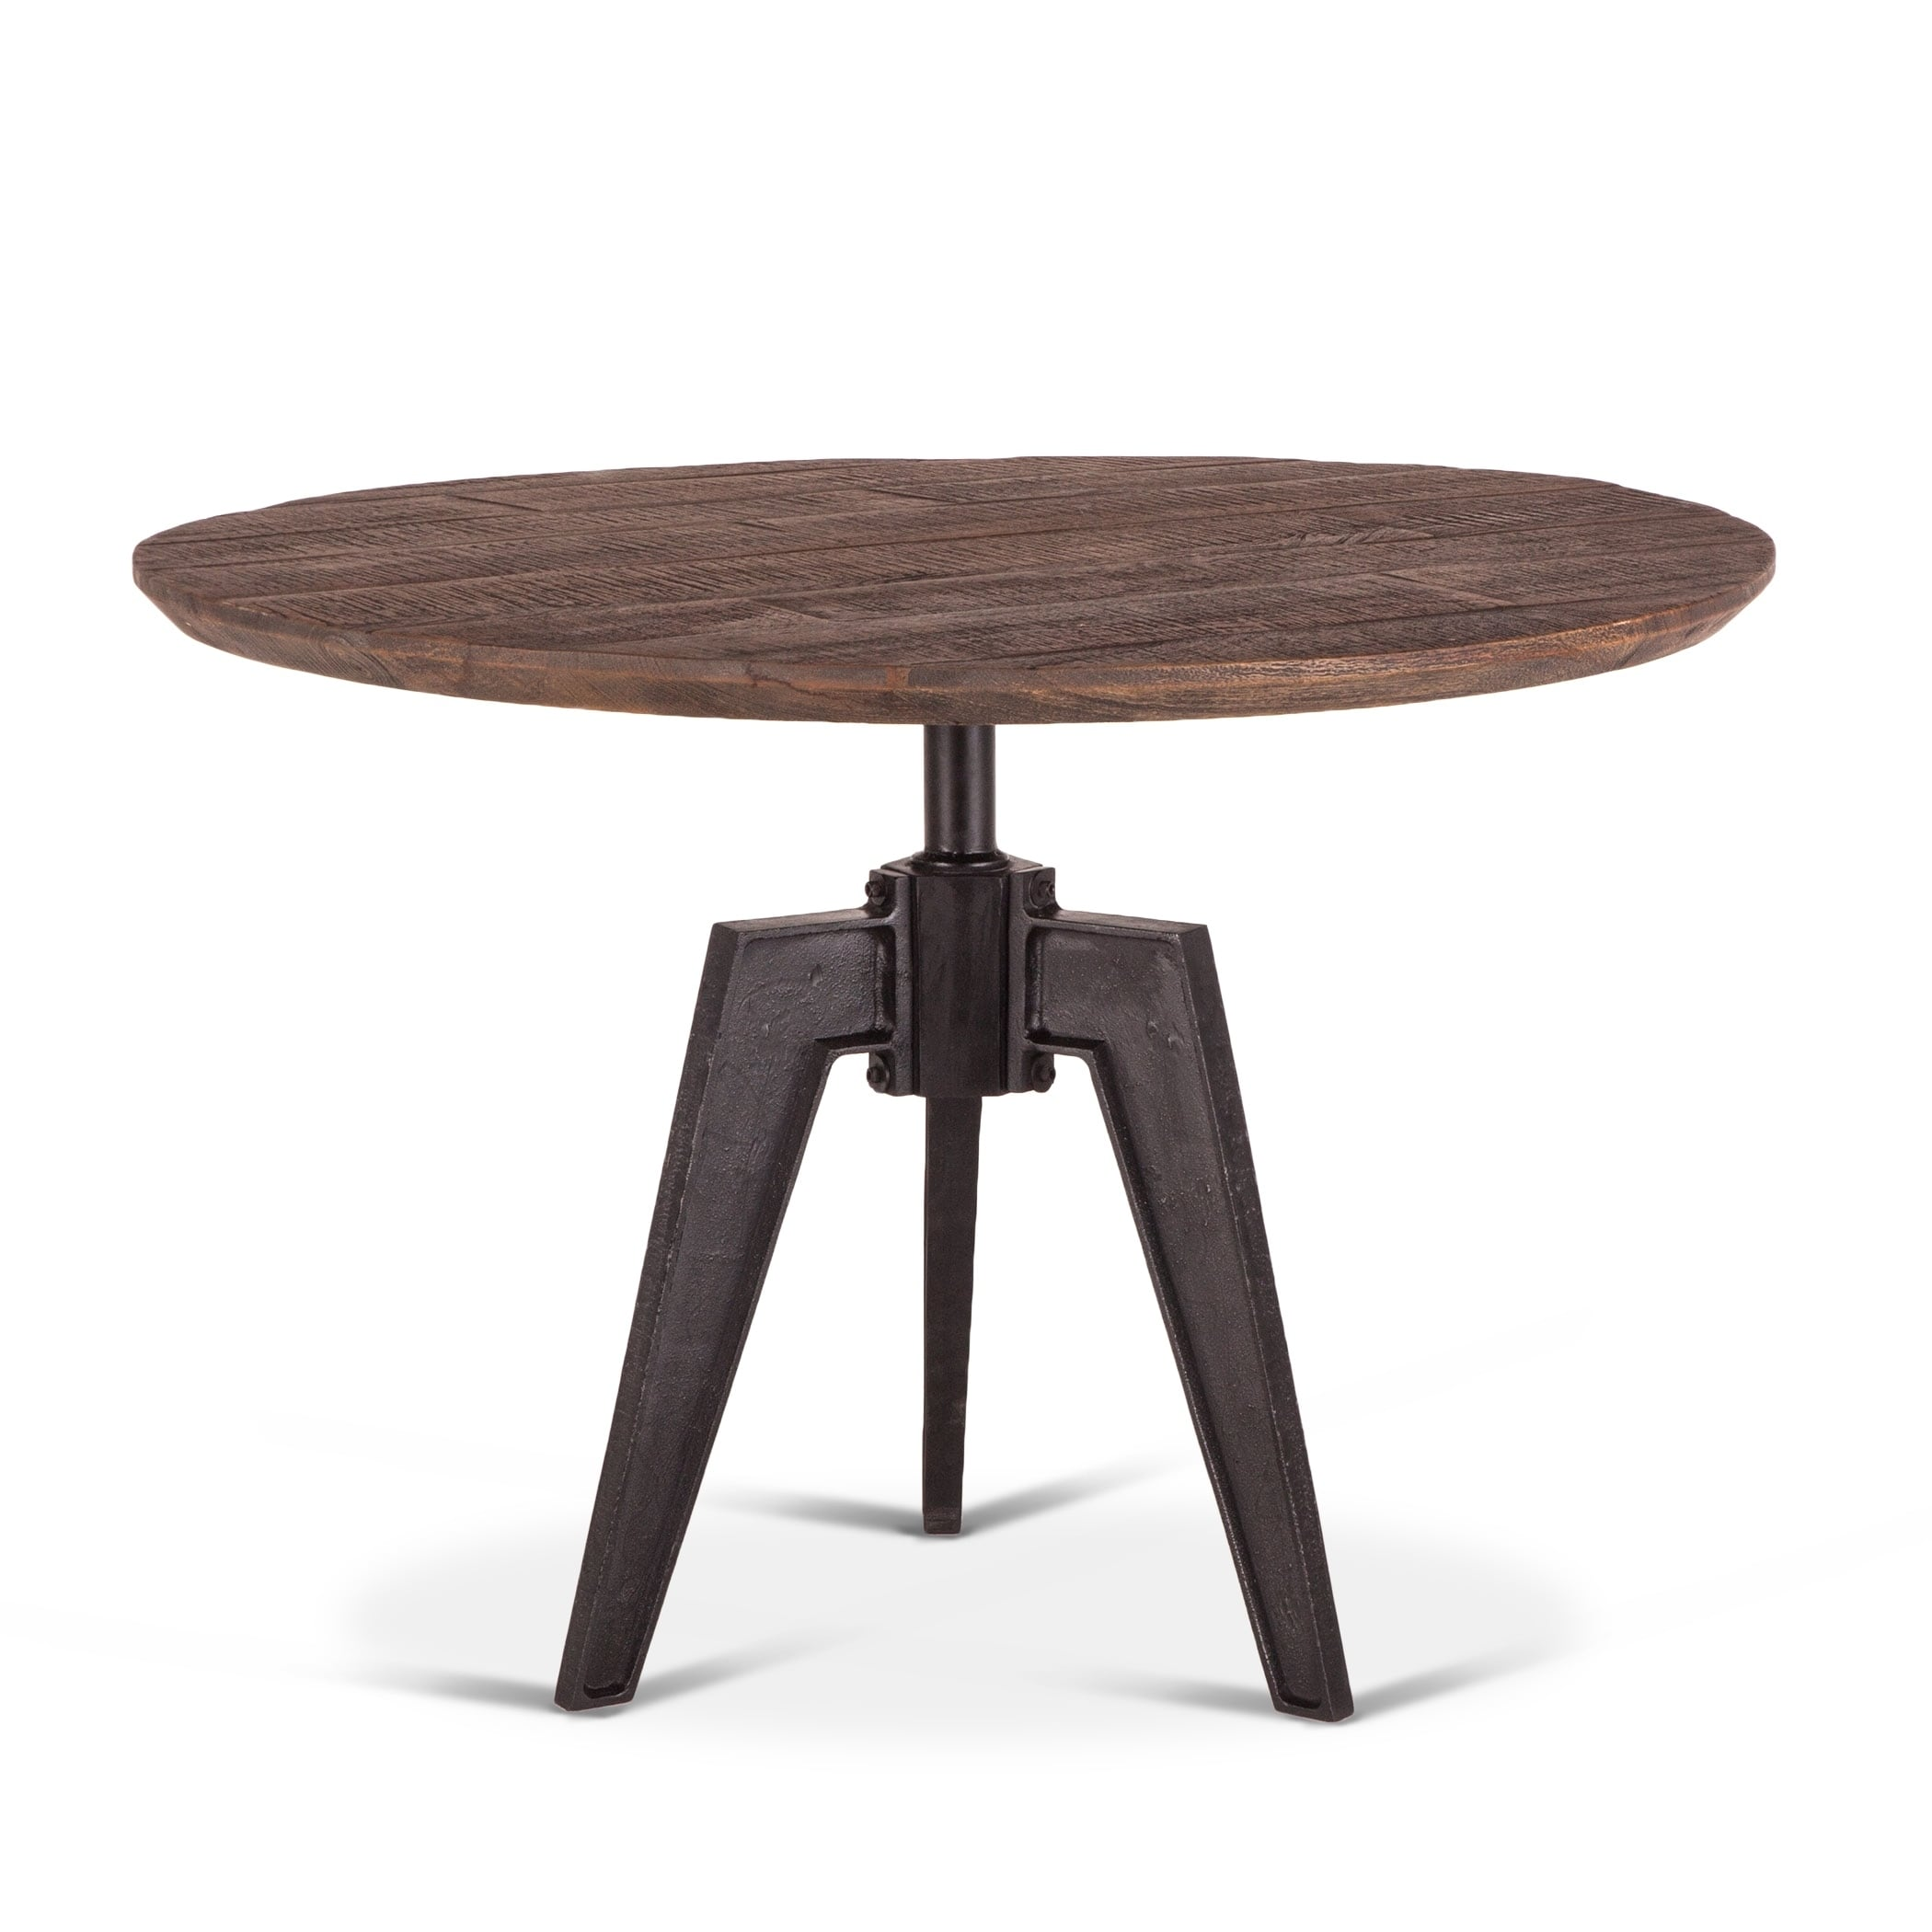 Dining Table With Cast Iron Base